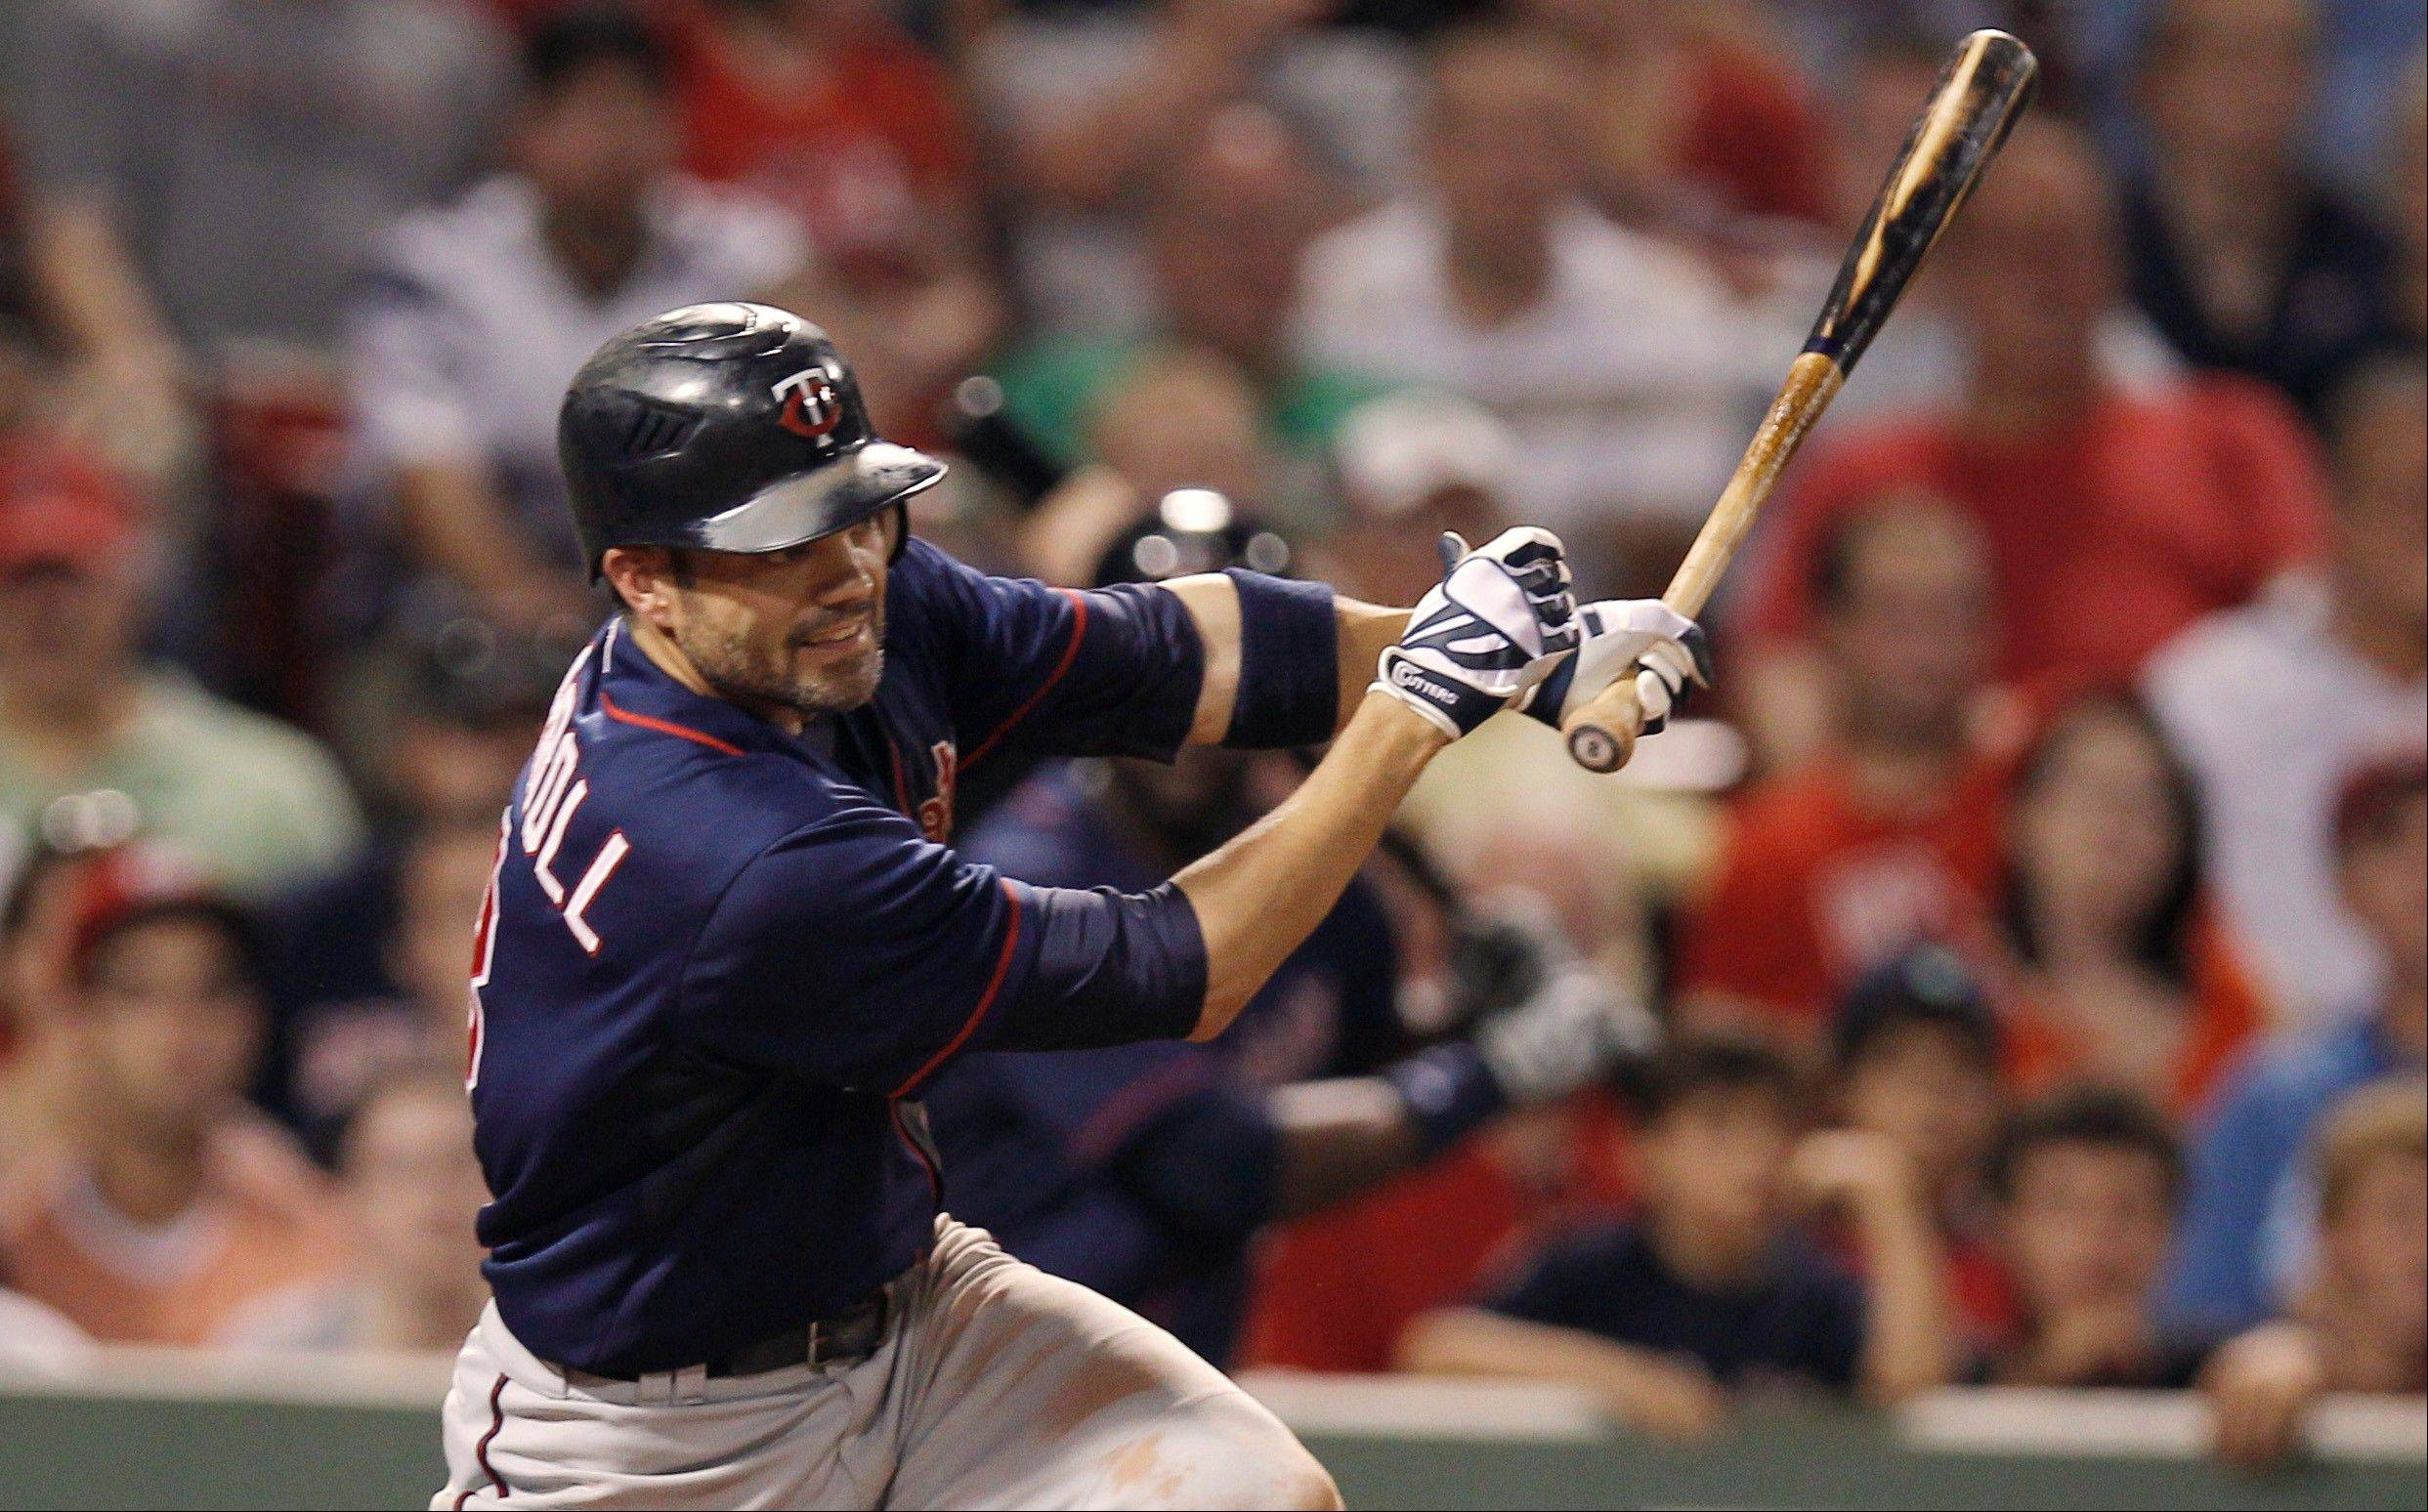 The Twins' Jamey Carroll follows through on a go-ahead RBI single during the 10th inning Friday in Boston.